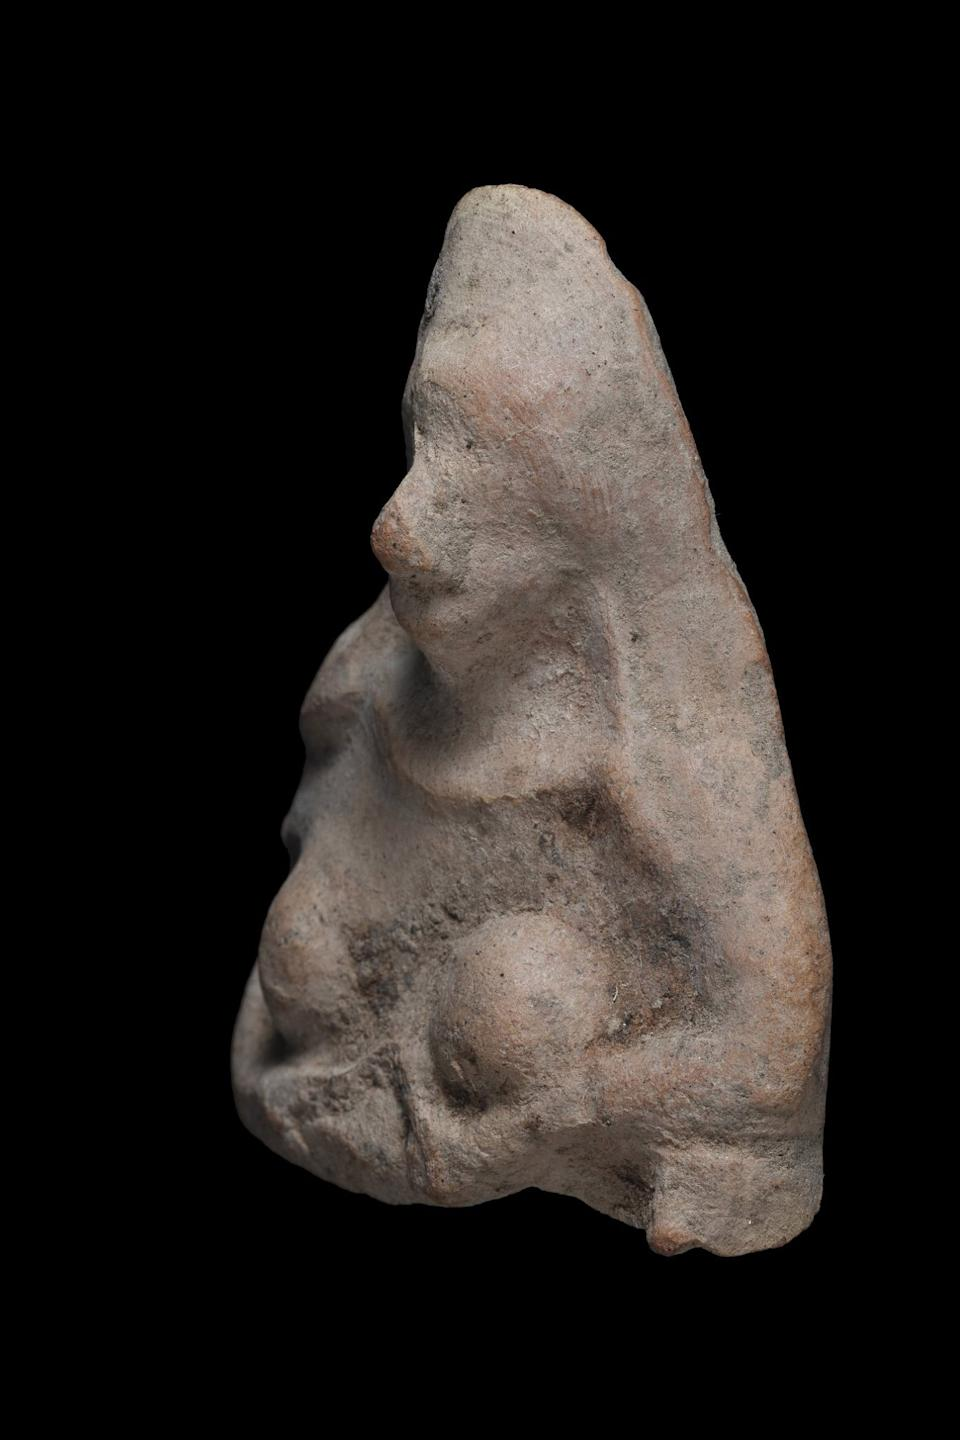 The 2,500-year-old figurine. Source: Newsflash/Australscope